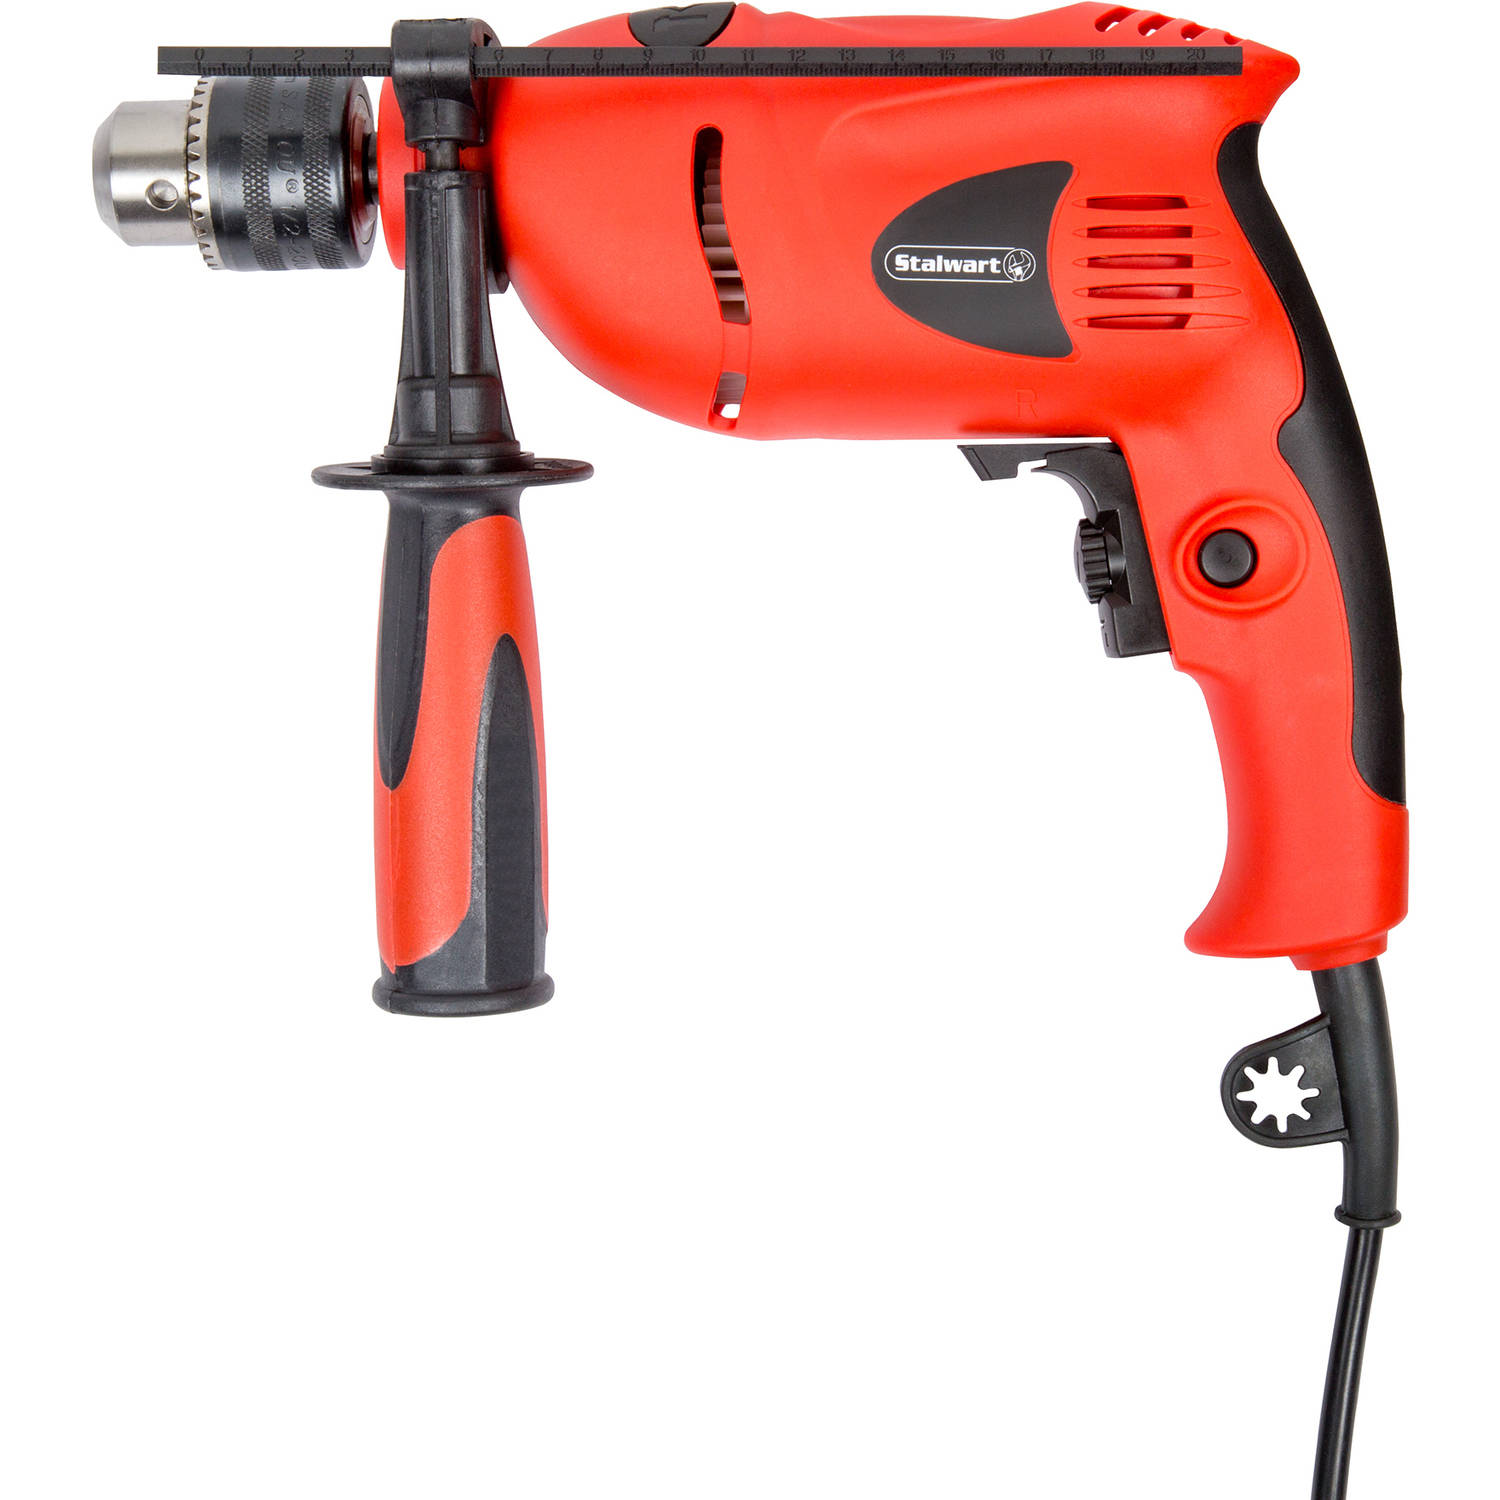 "Stalwart 5.0 Amp 120V Variable Speed Hammer Drill, 1 2"" by Trademark Global LLC"